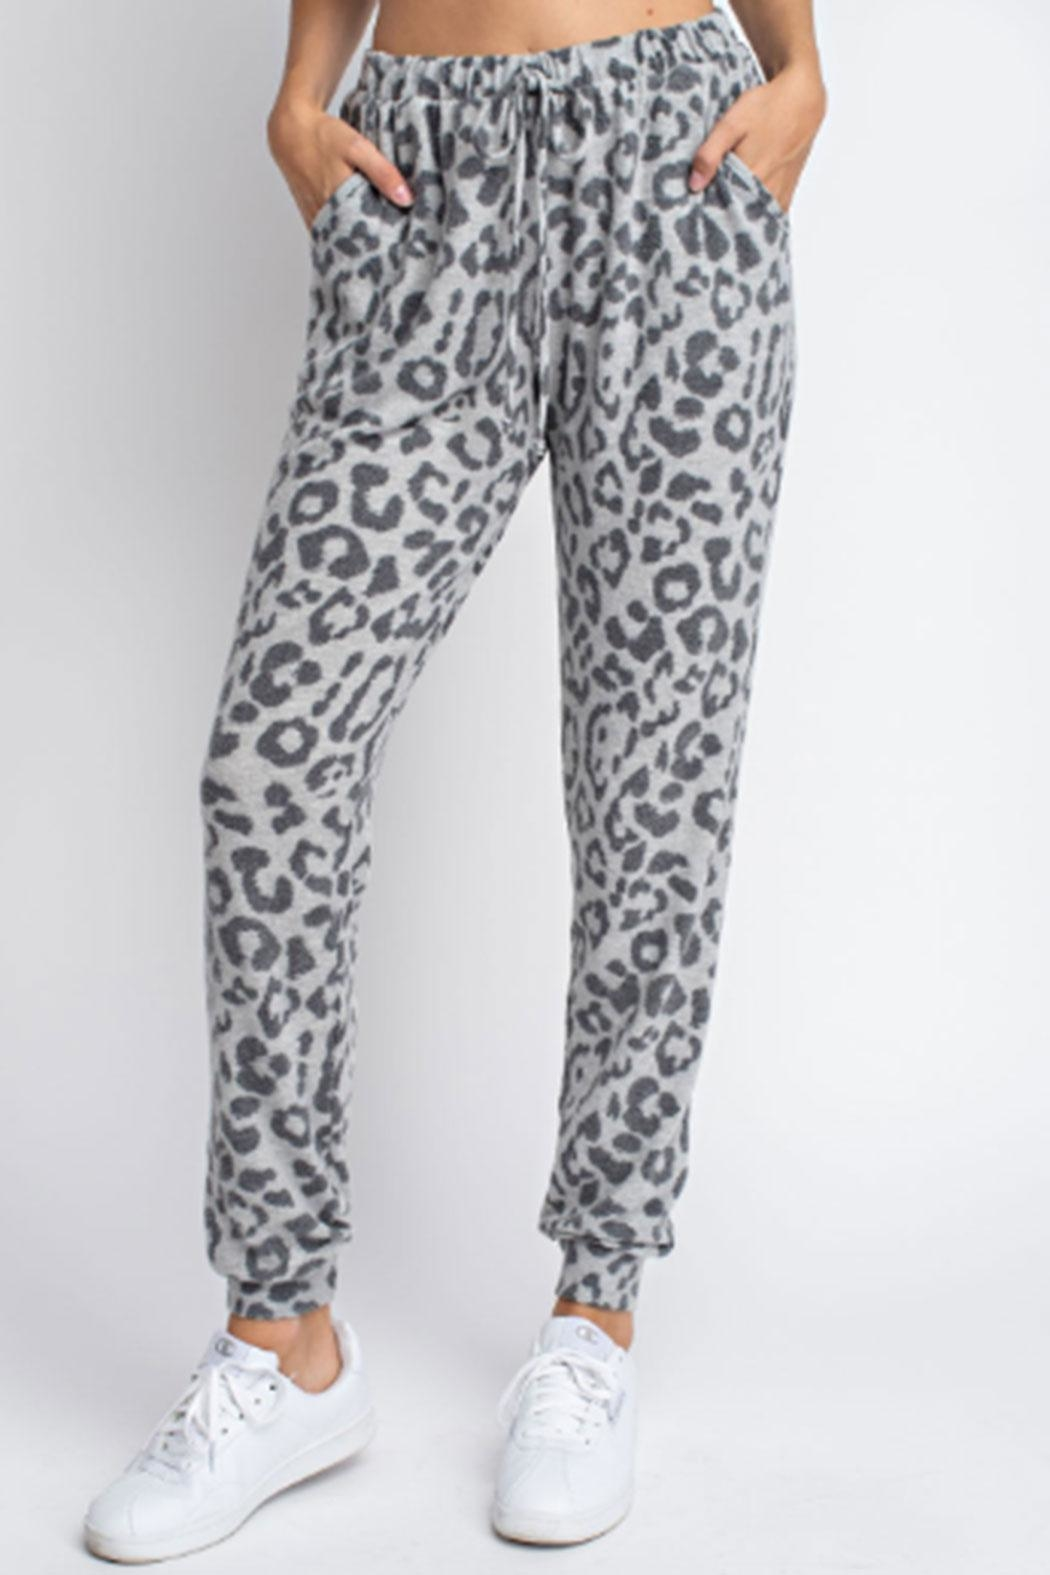 143 Story Hacci-Brushed Leopard Joggers - Main Image